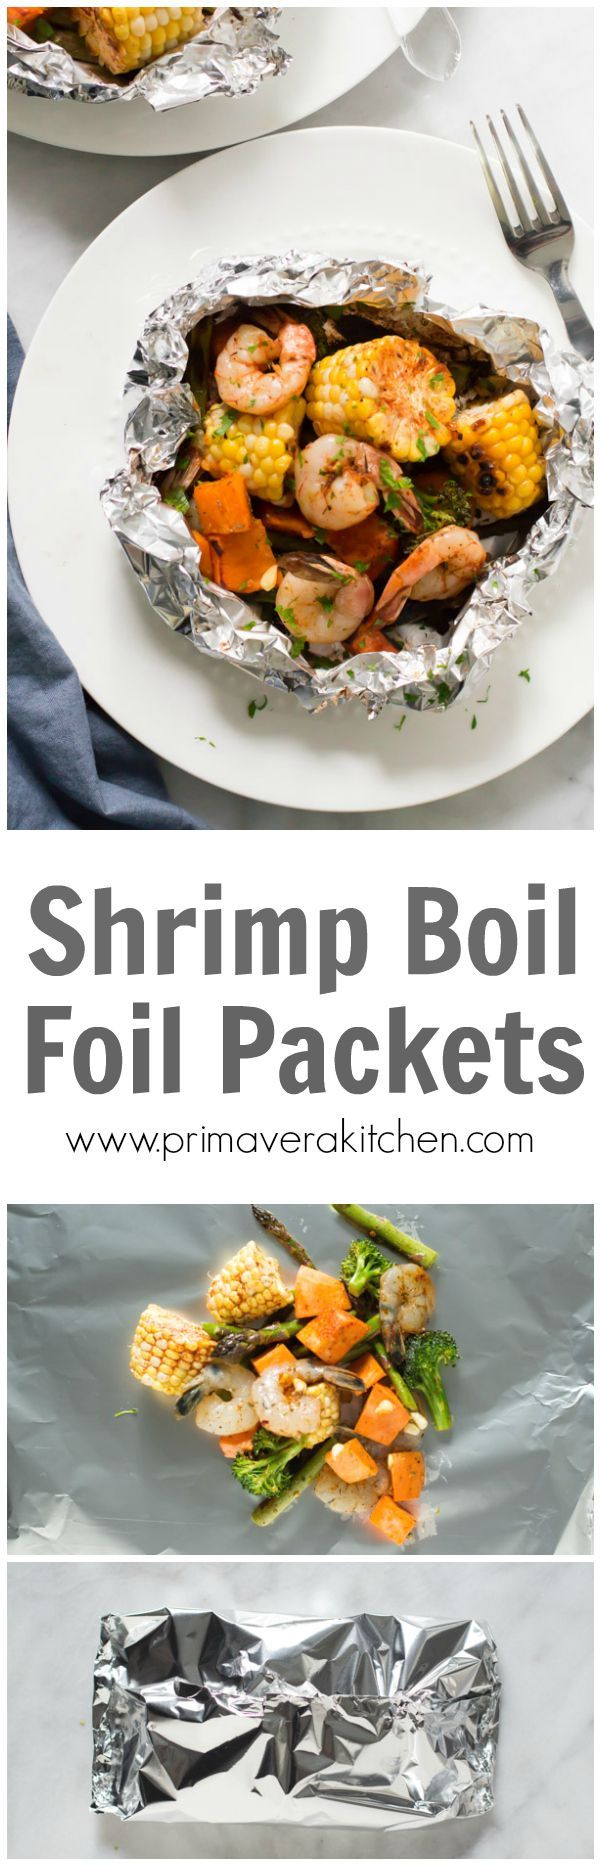 Shrimp Boil Foil Packets - Just make clean up a total breeze with this Shrimp Veggies Foil Packets and have dinner on the table in 15mins!